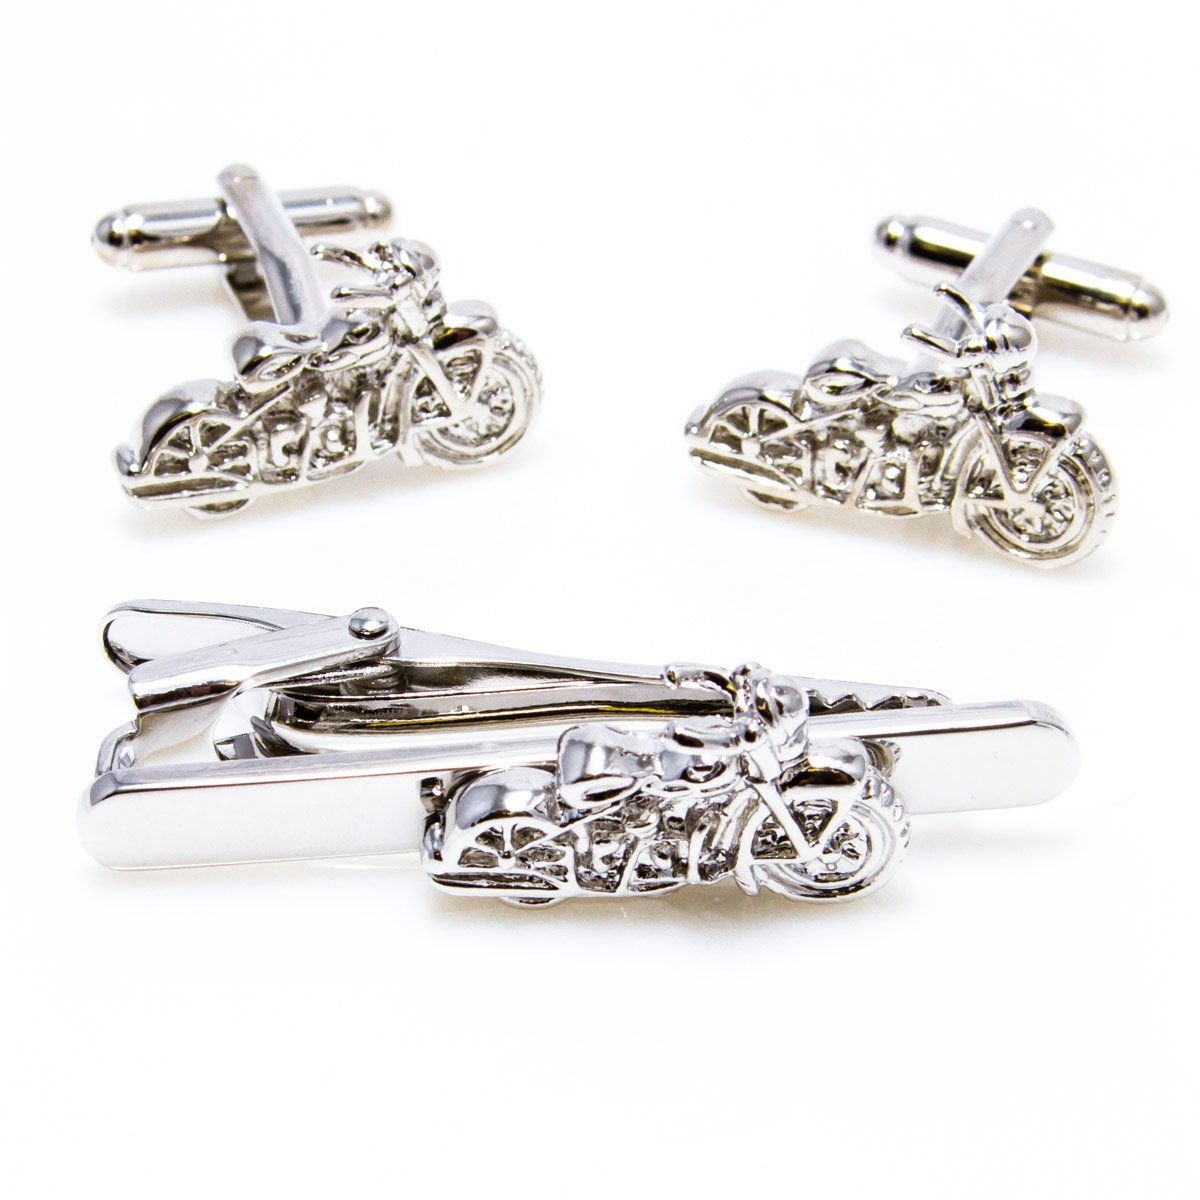 MRCUFF Motorcycle Pair of Cufflinks and Tie Bar Clip with a Presentation Gift Box by MRCUFF